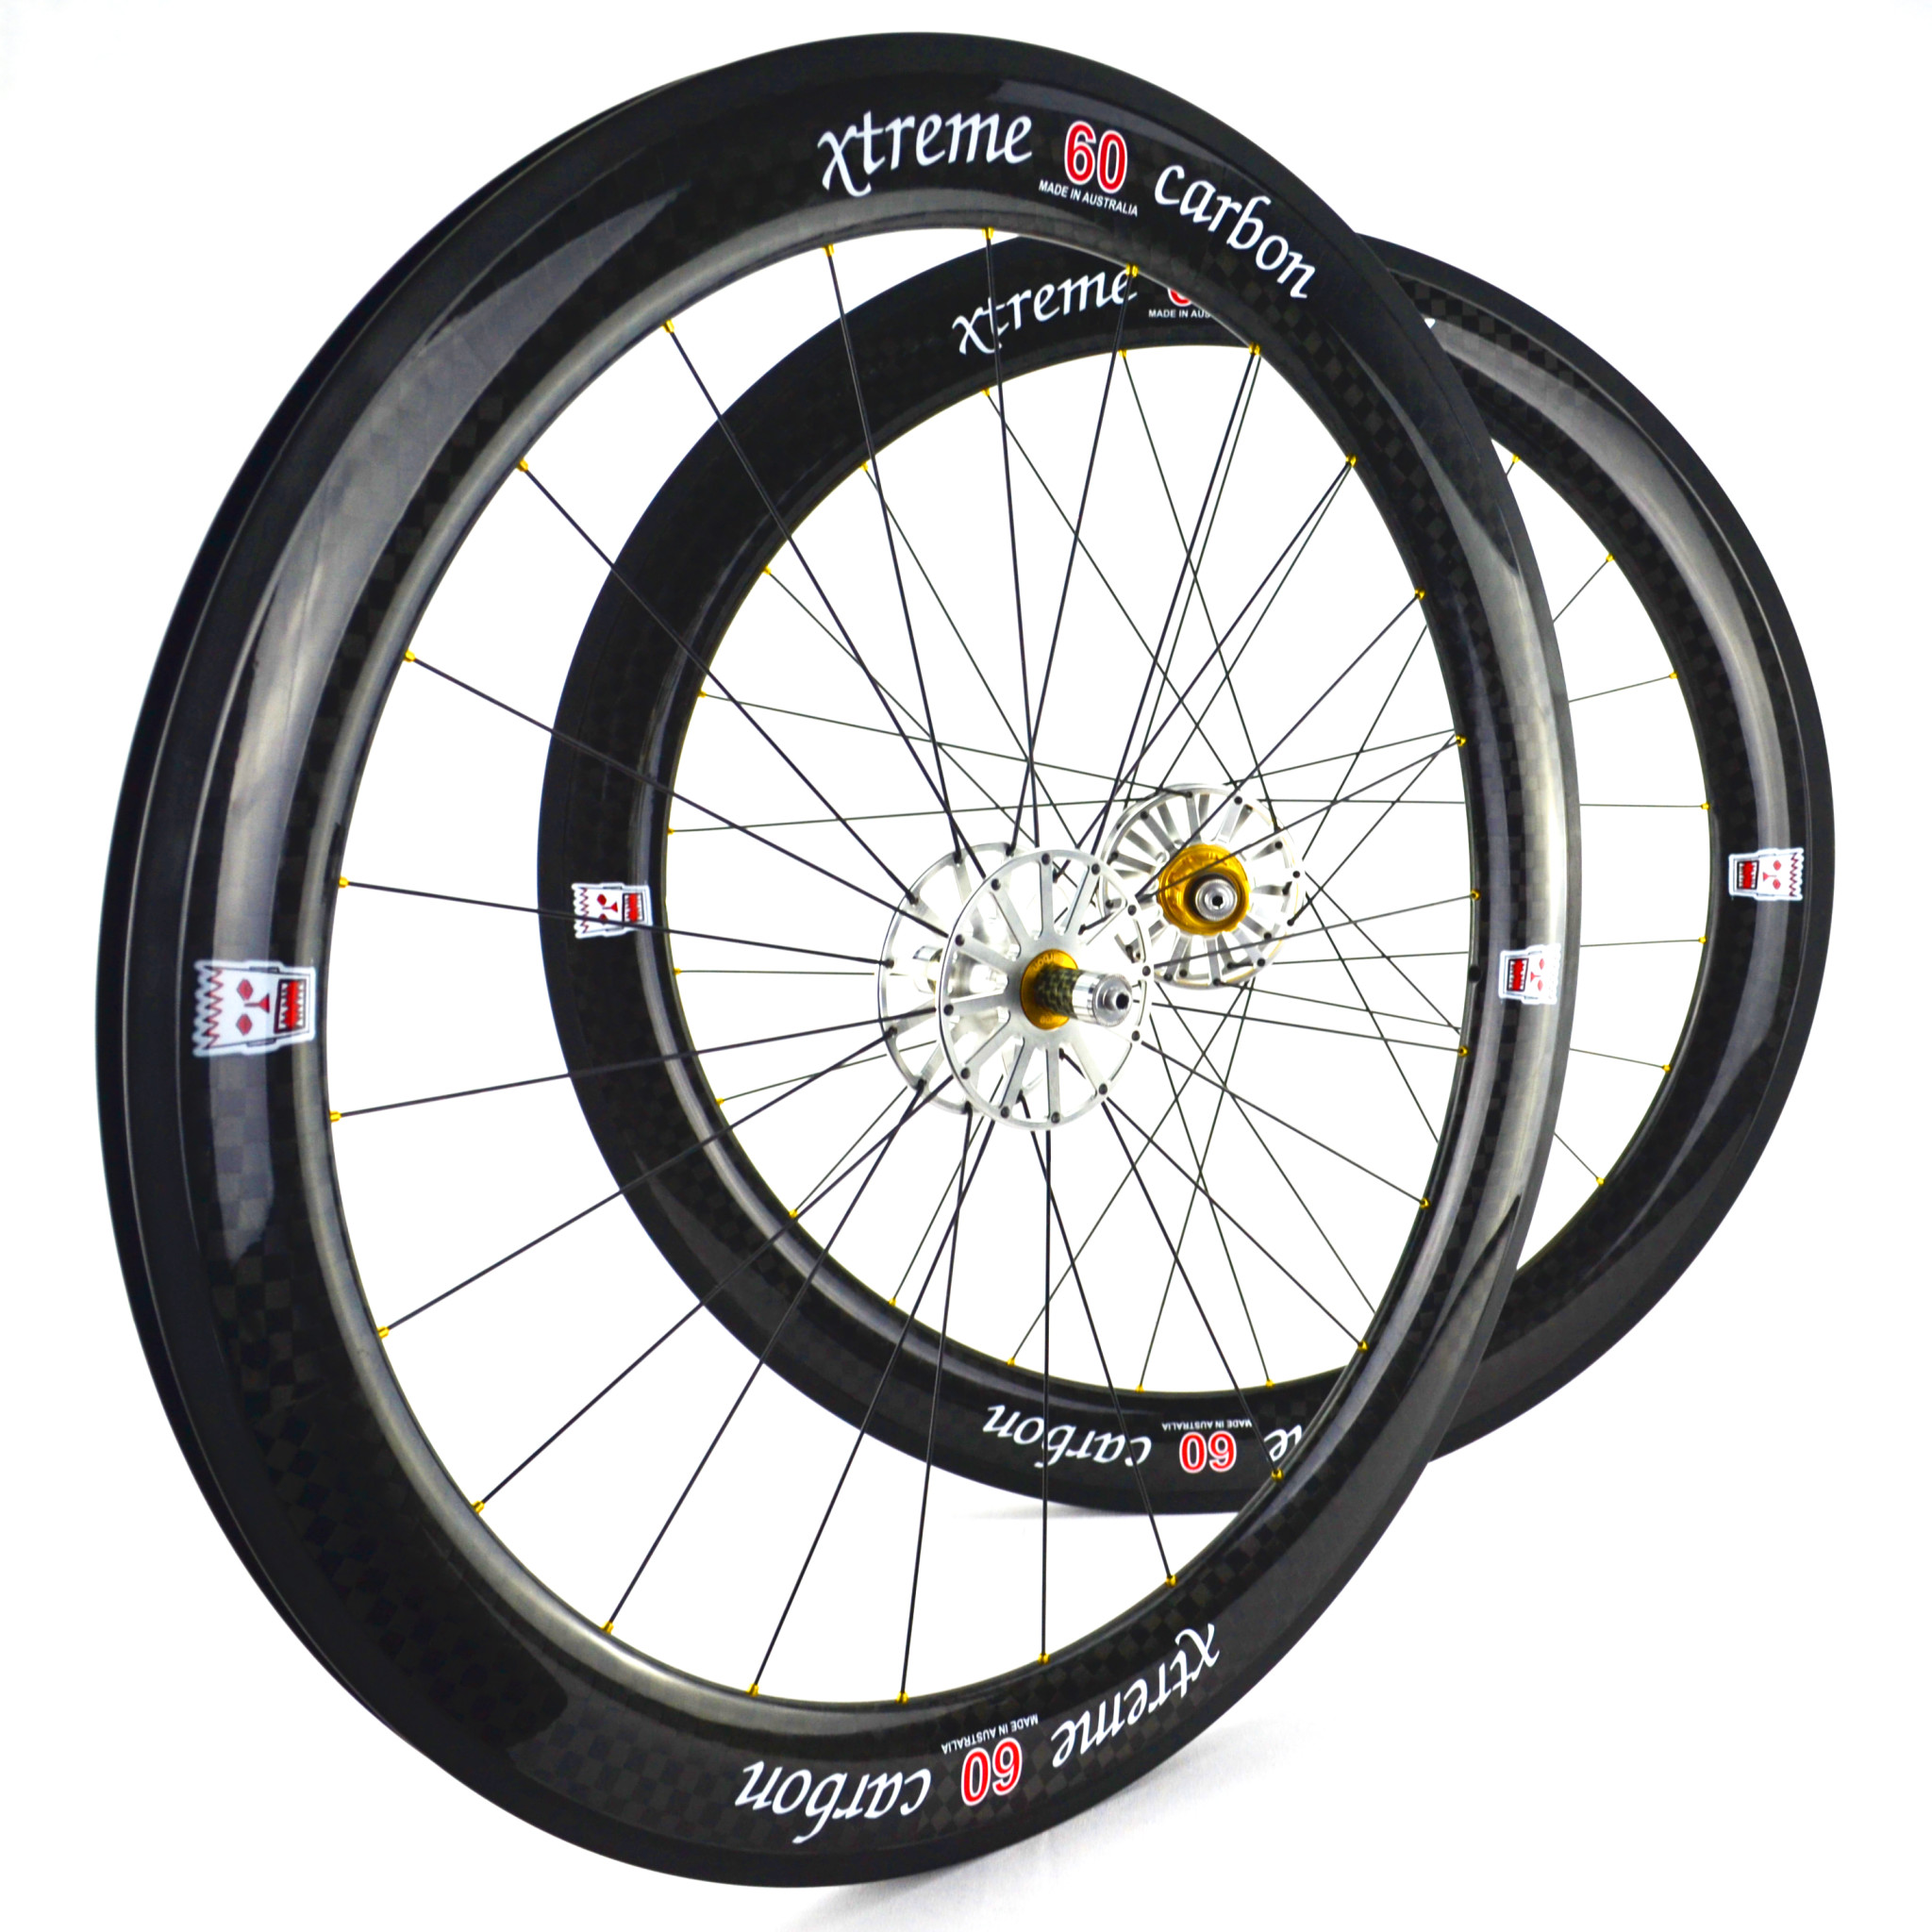 Triathlon Wheels - Xtreme Carbon